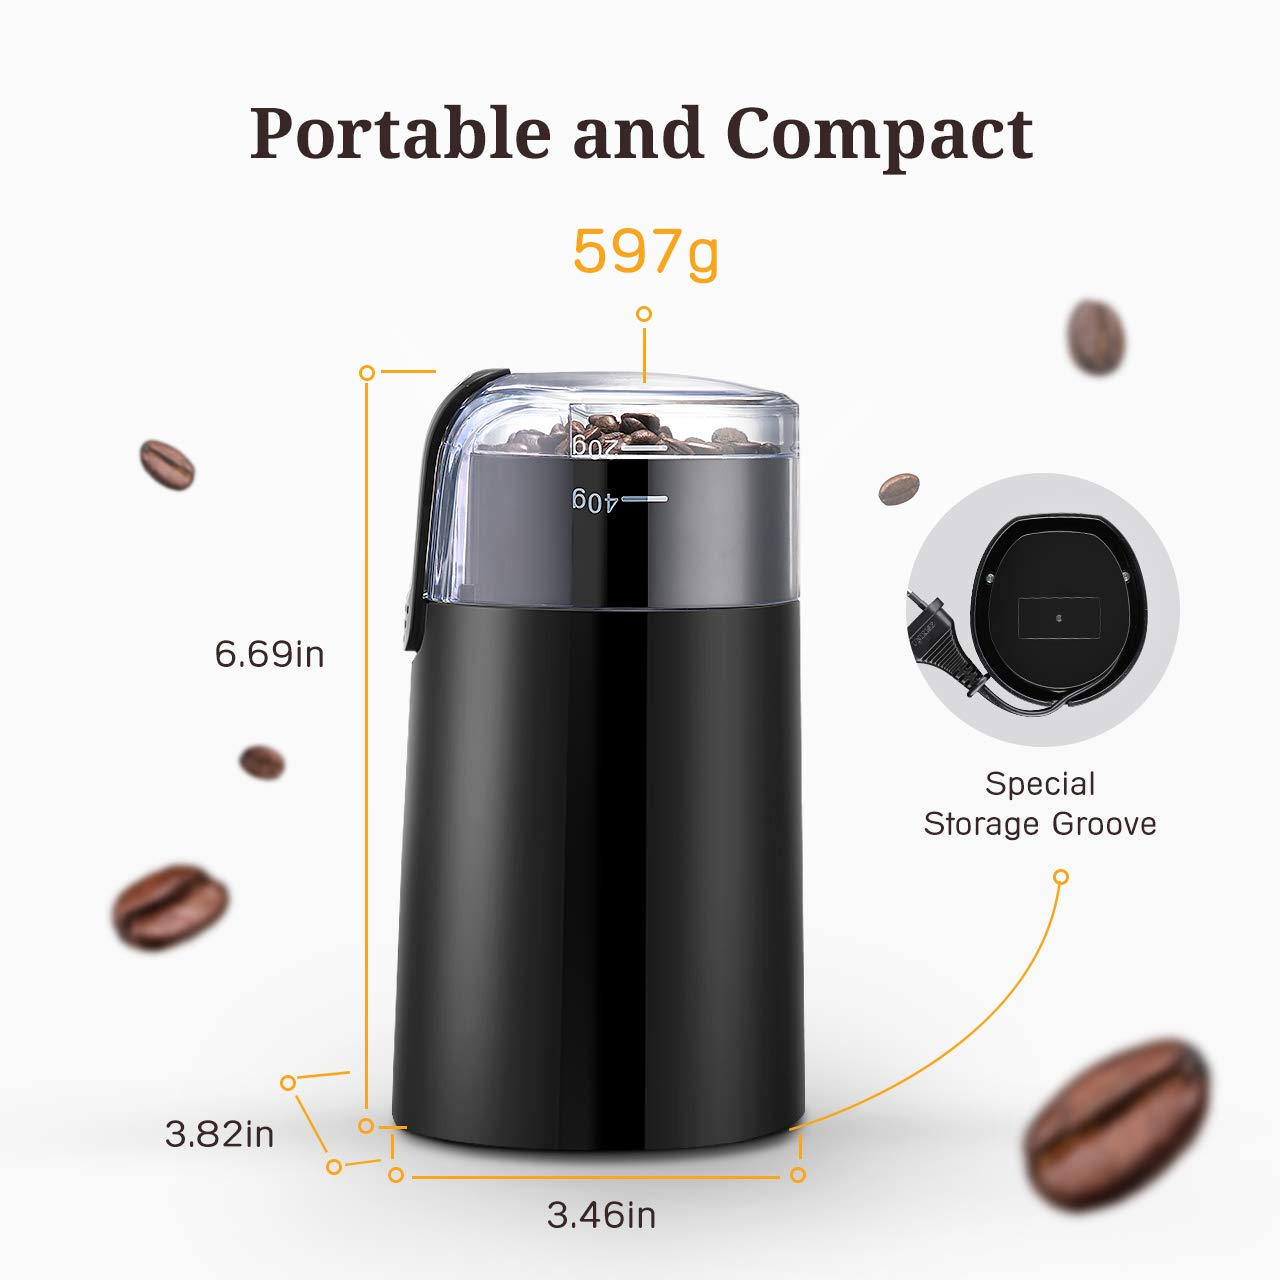 Coffee-Grinder-IKICH-Electric-Coffee-Bean-Grinder-Mill-Grinder-with-Noiseless-Motor-Stainless-Steel-Blade-One-Touch-Design-for-Home-and-Office-Portable-Use-Also-for-Spices-Pepper